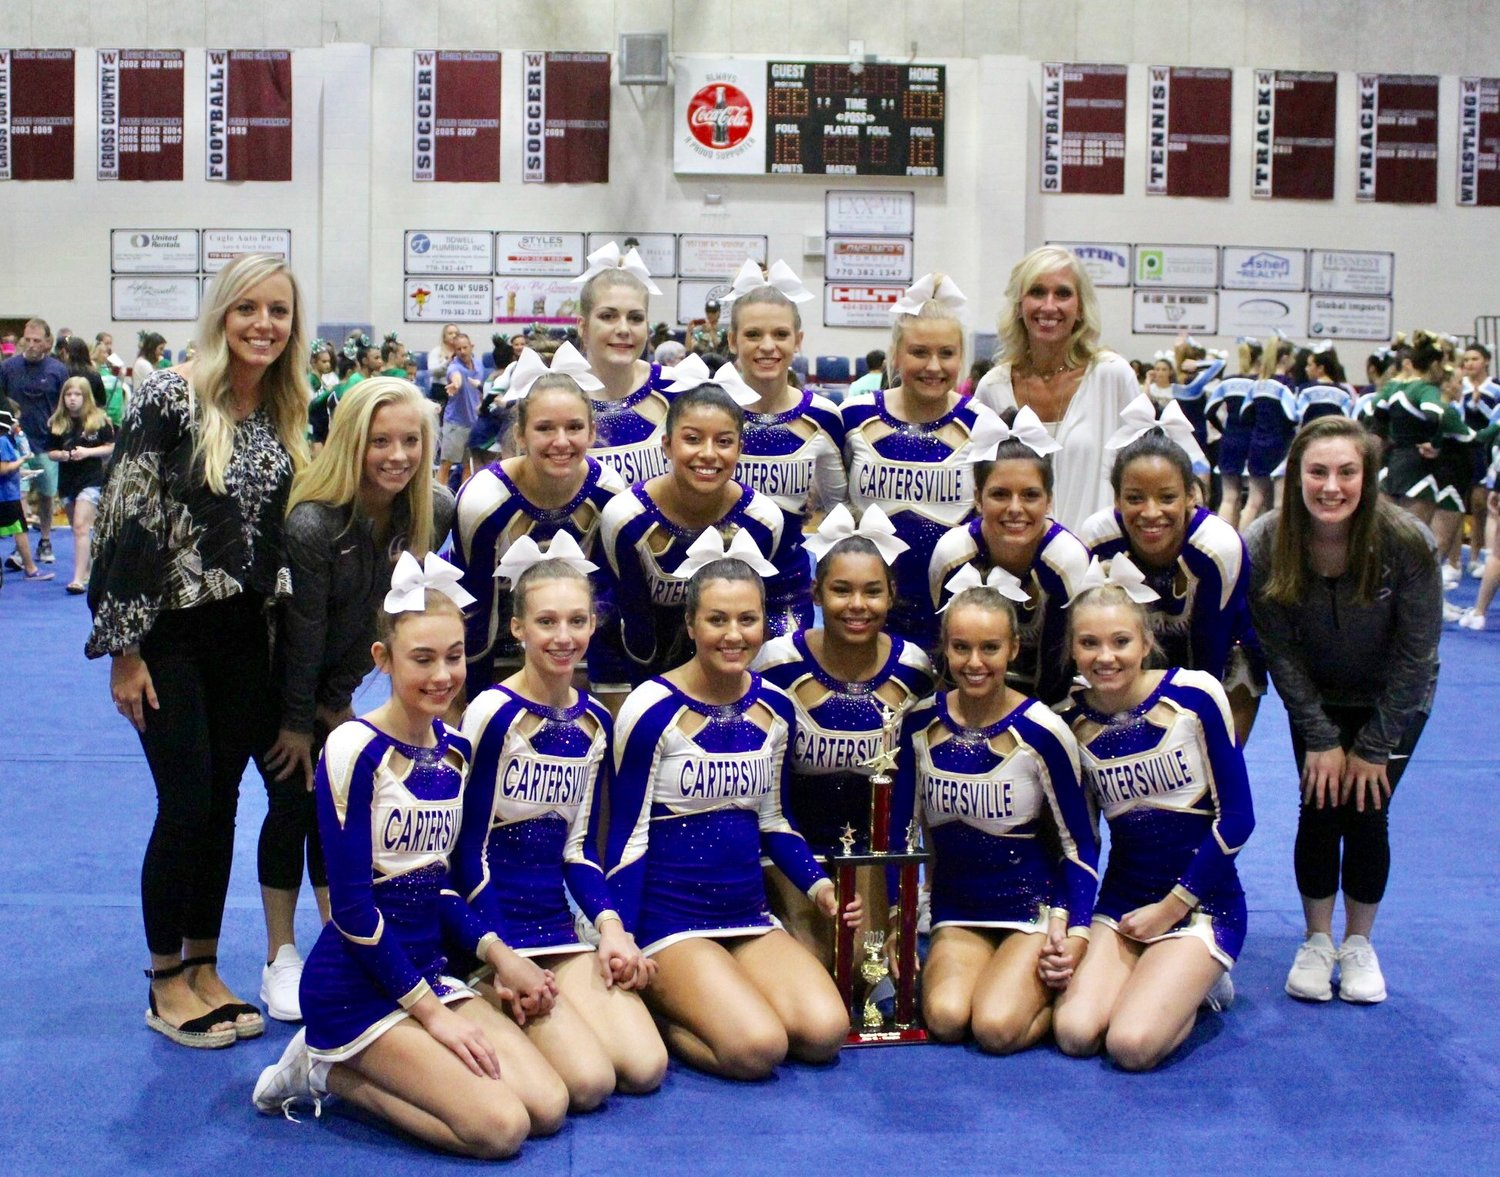 The Cartersville cheer squad poses for a photo after winning first place in the Class 4A division of Saturday's competition at Woodland High. It's the second win in as many competitions for the Canes.